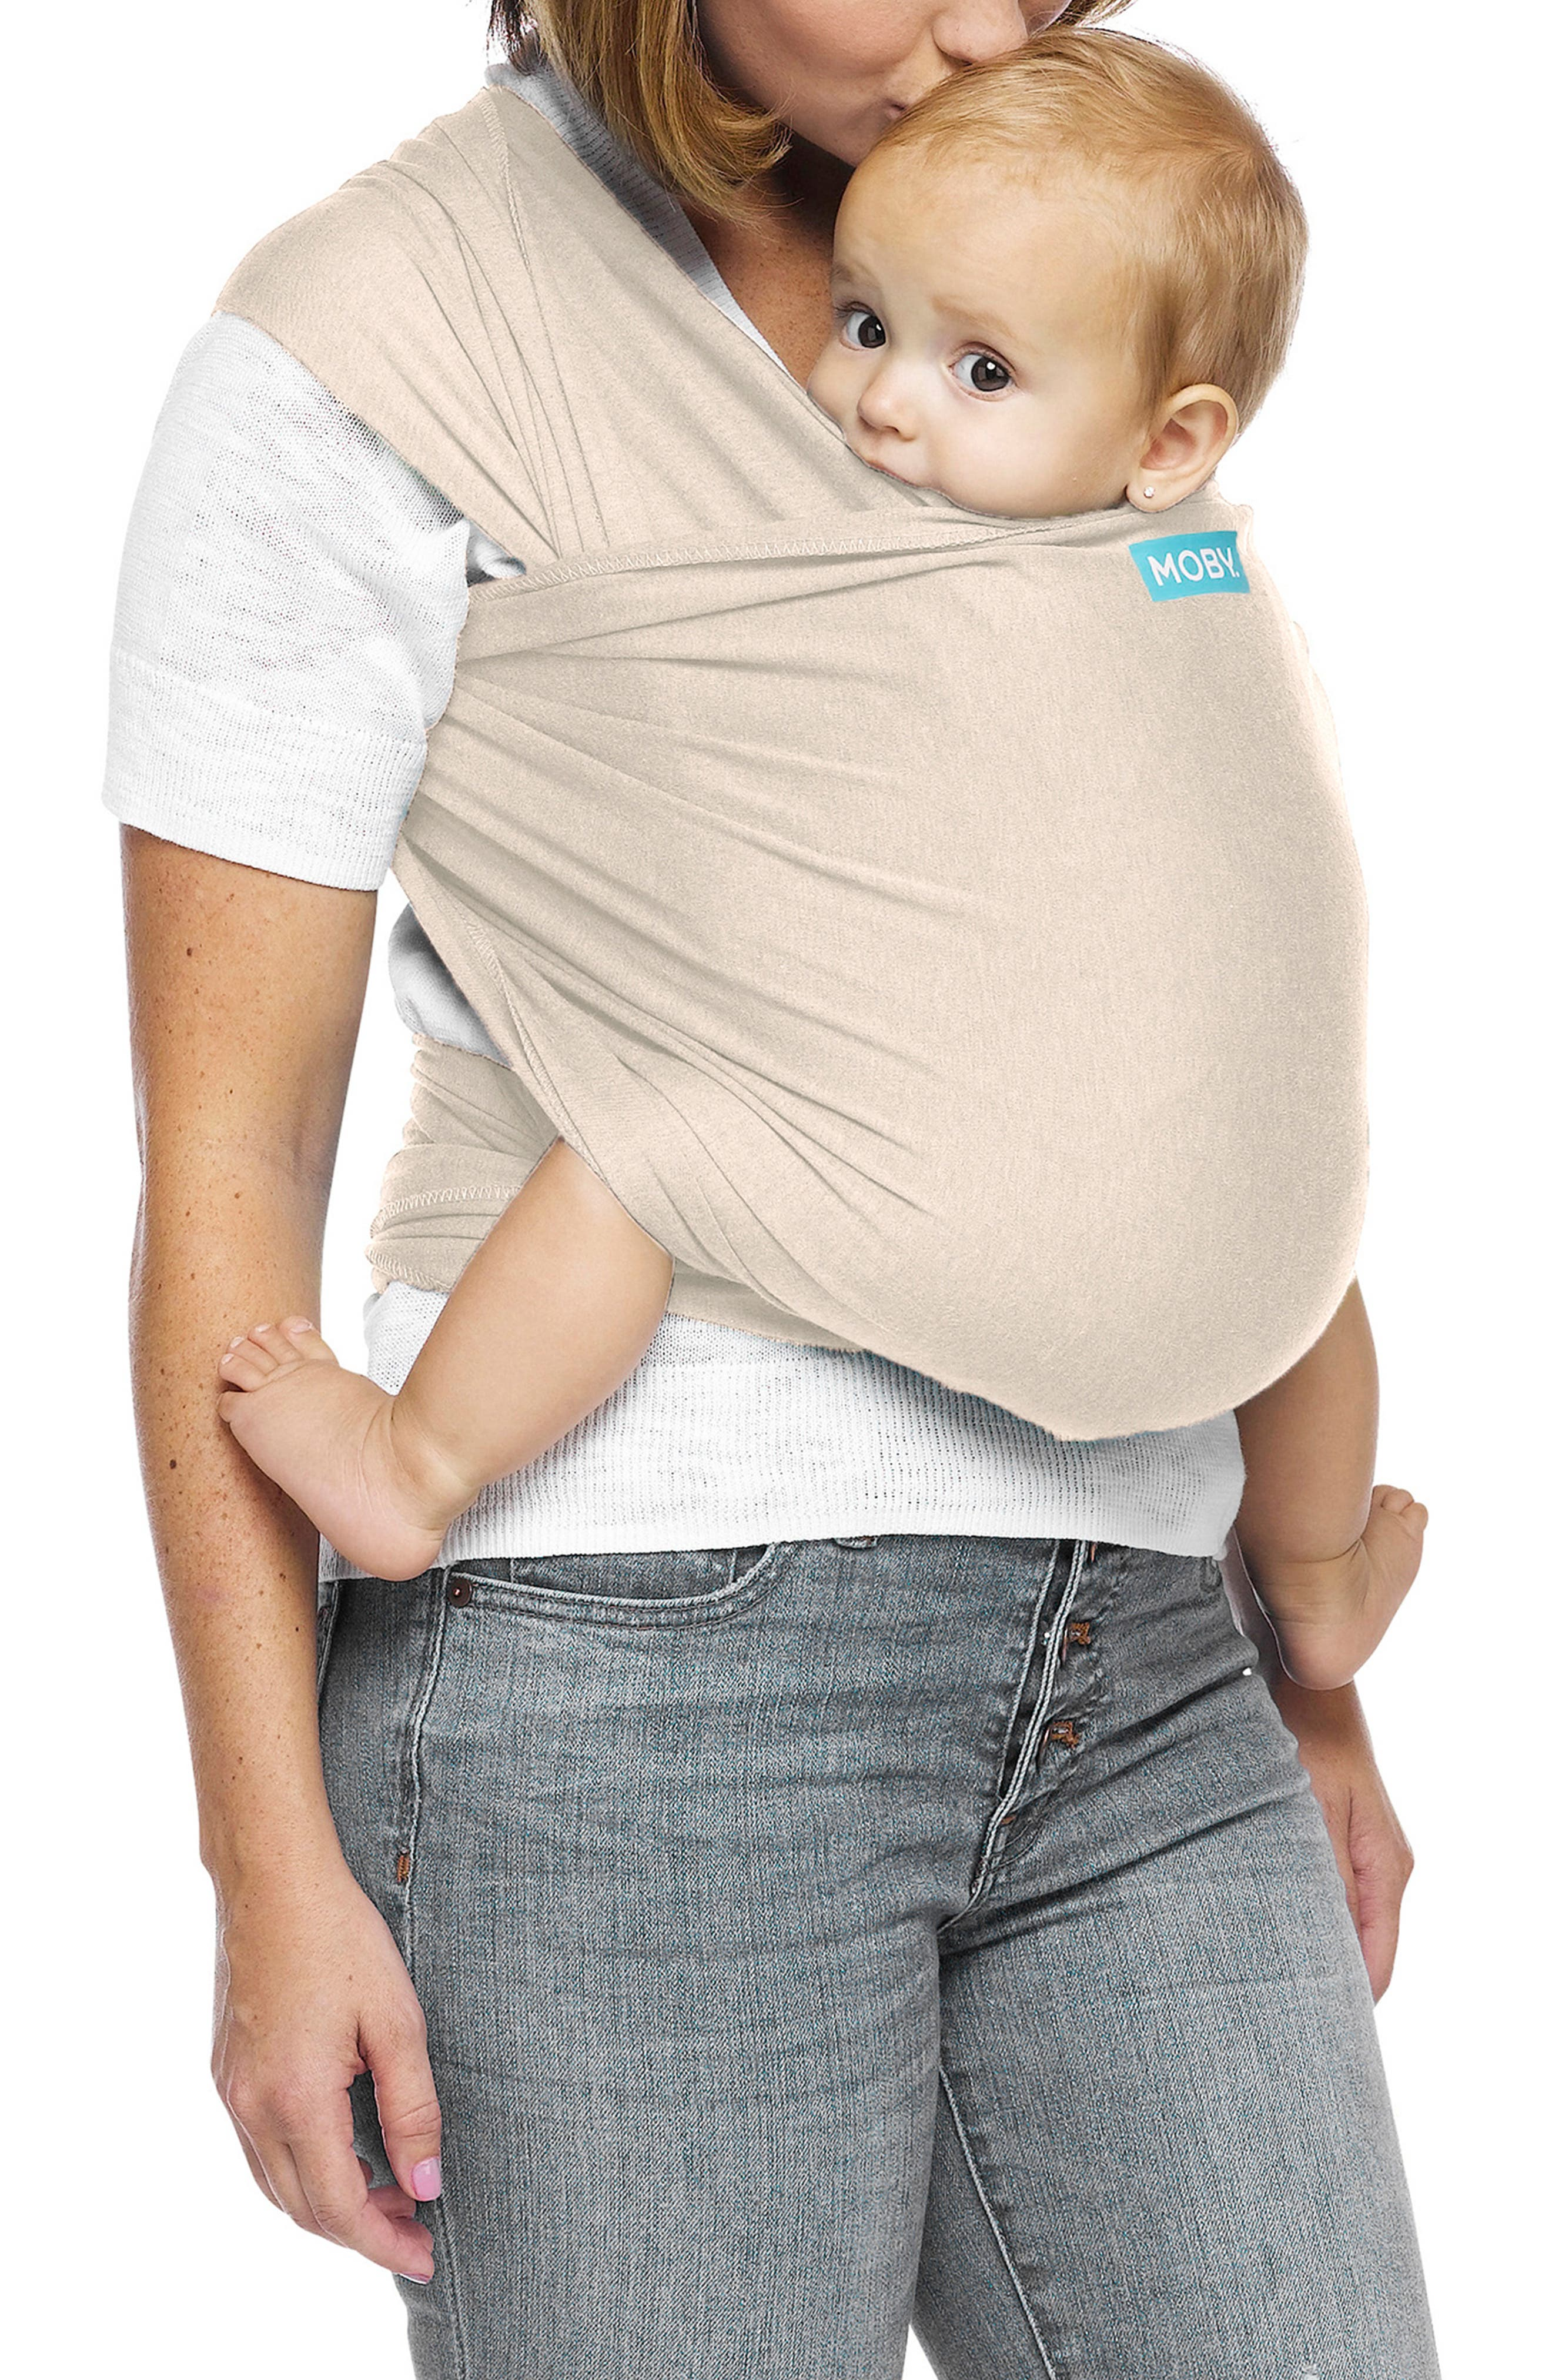 Infant Moby Evolution Baby Carrier Size One Size  Beige